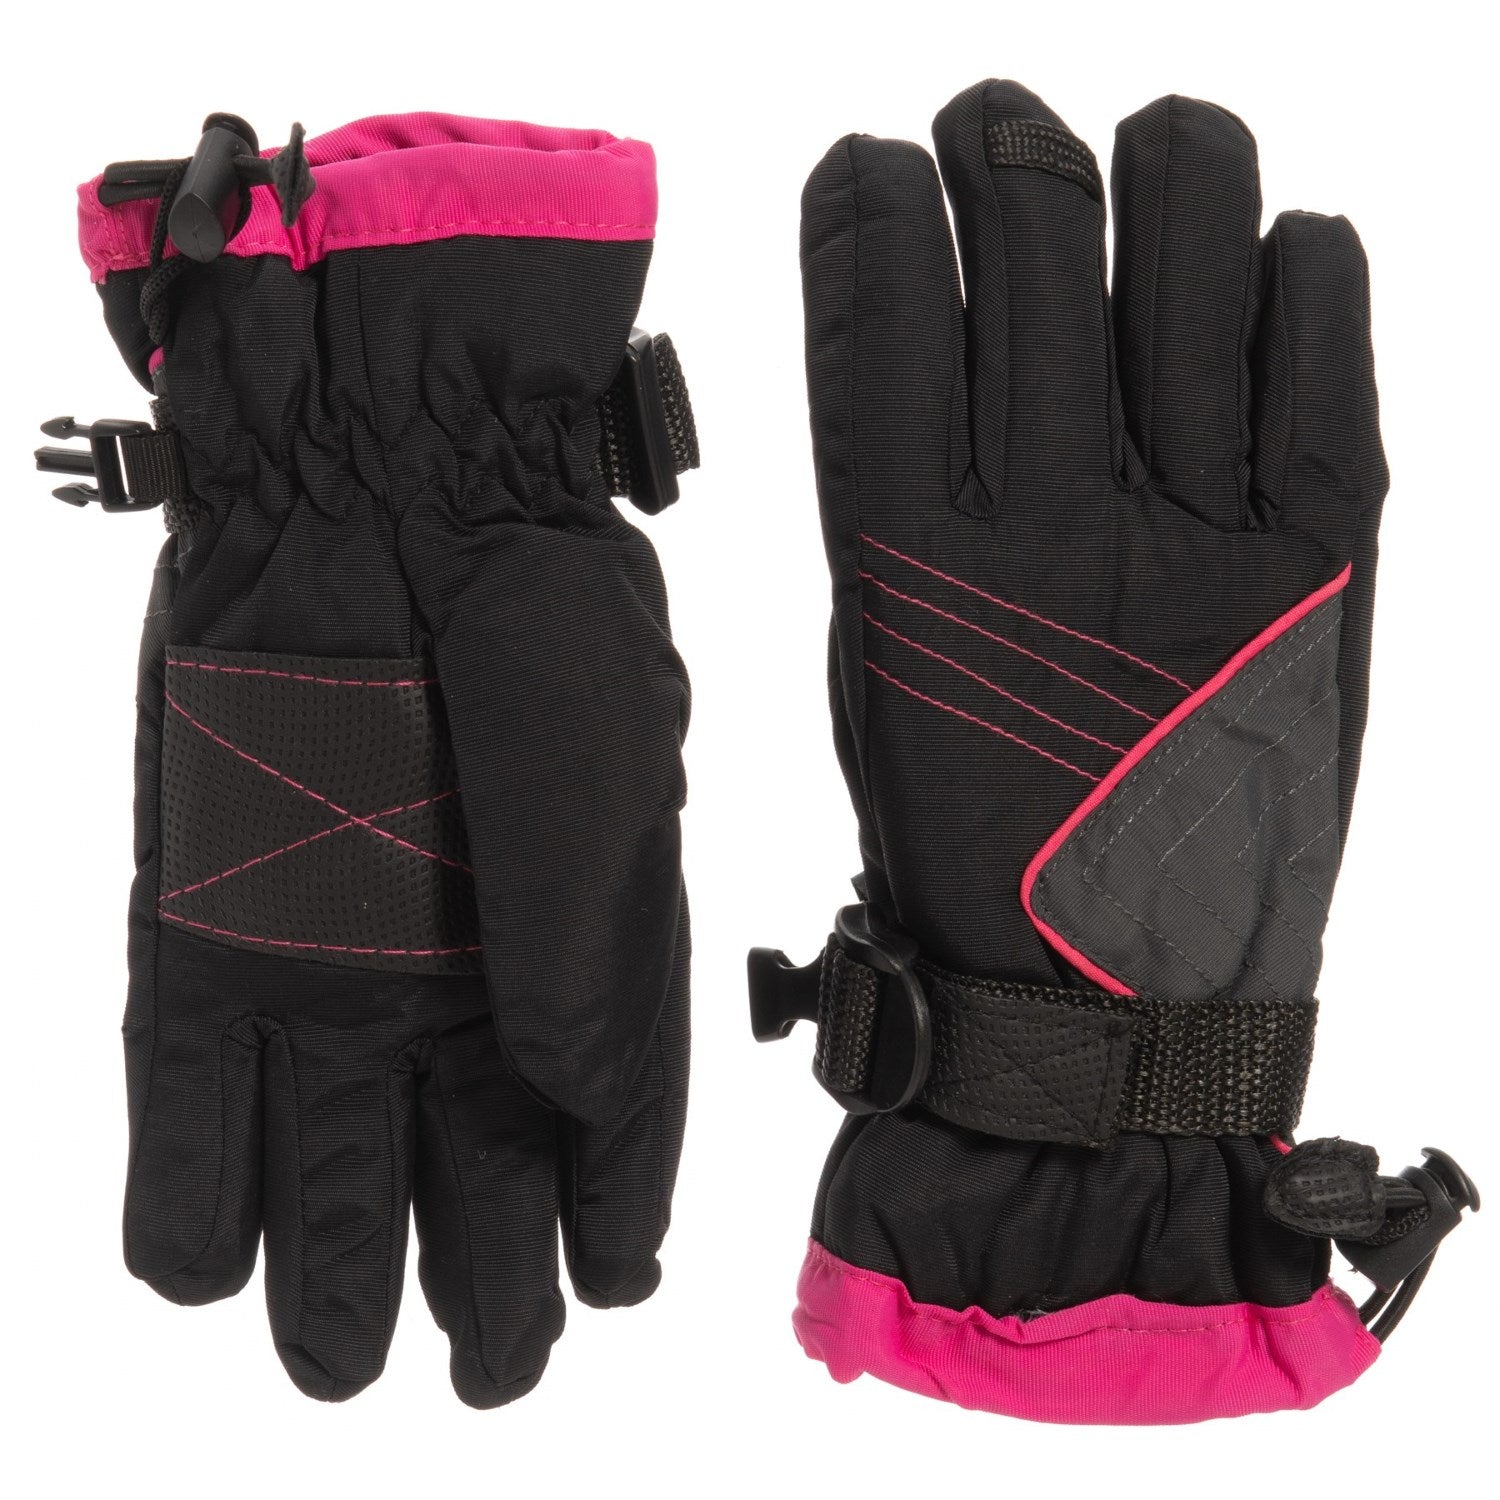 Igloos AquaE4 Snowboard / Ski Gloves - Waterproof, Insulated Black Pink Kid Youth S/M - M/L